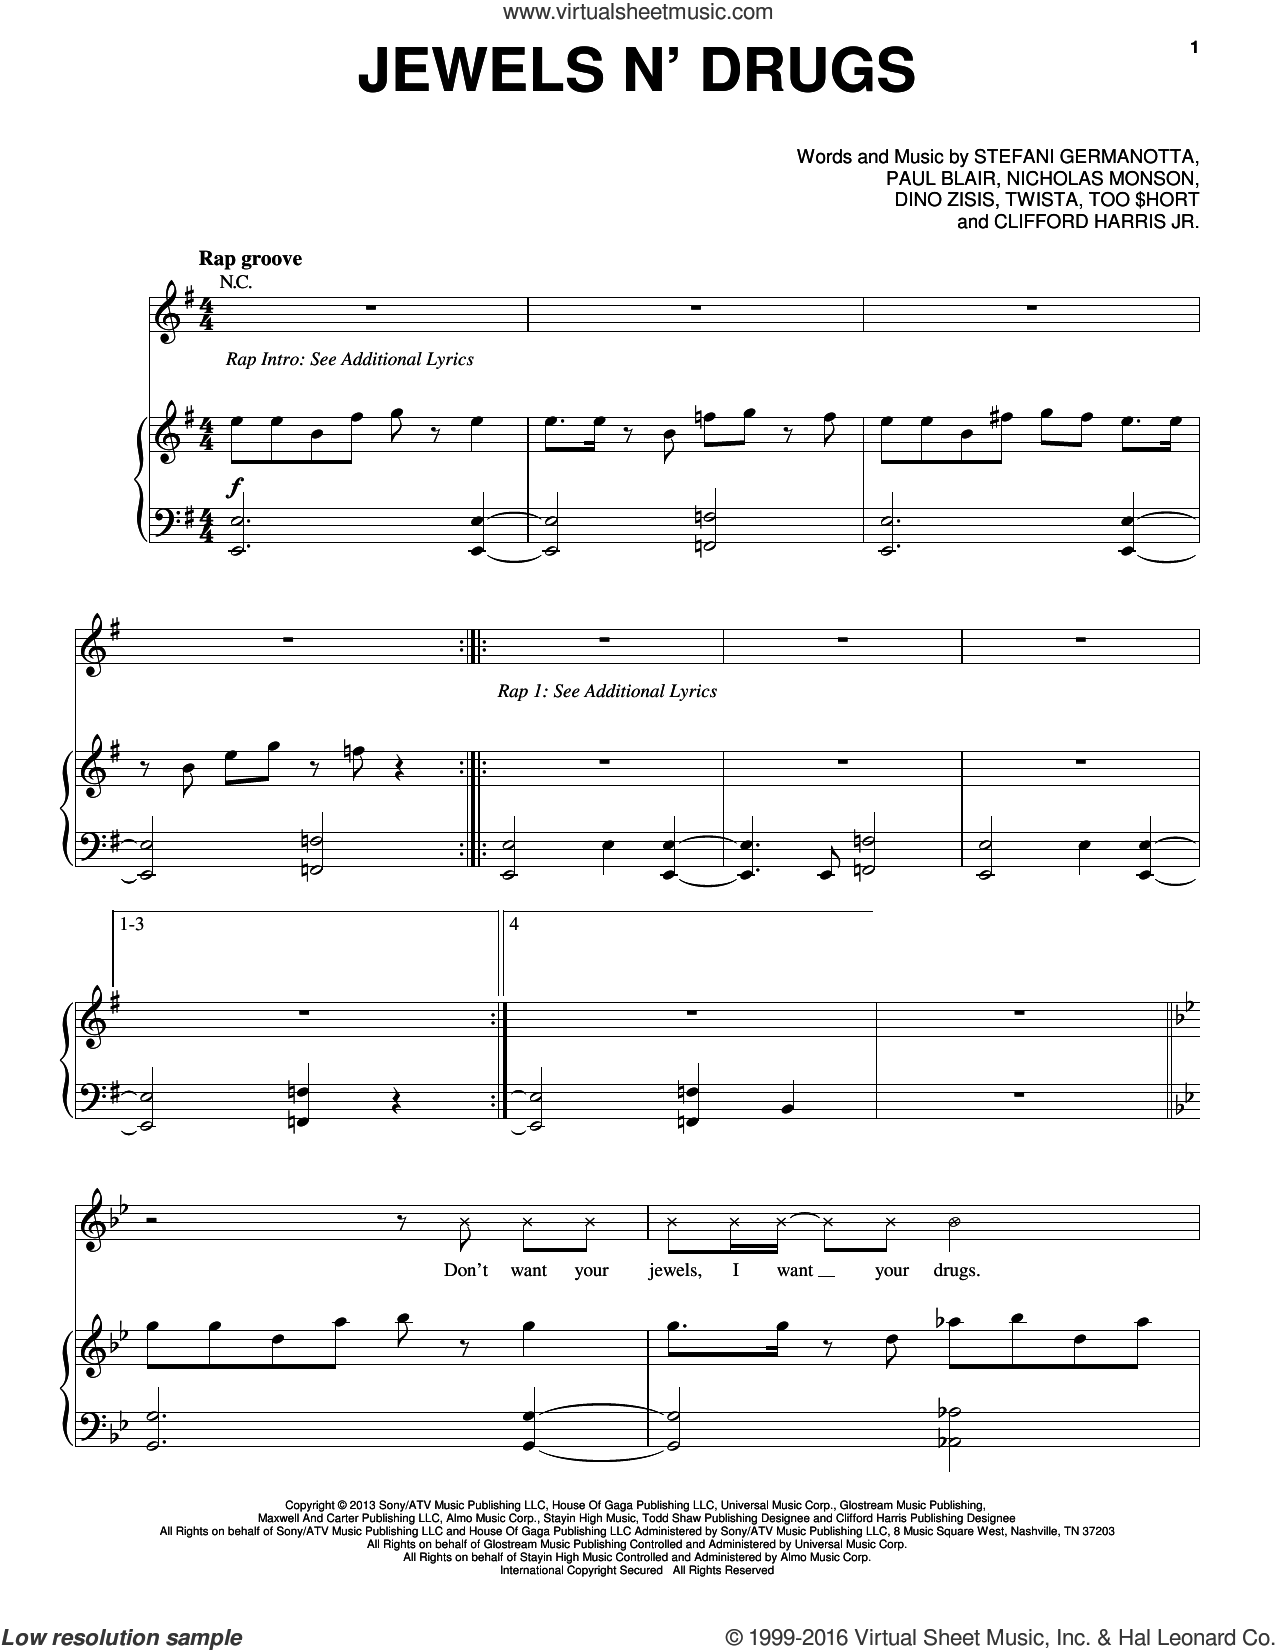 Jewels N' Drugs sheet music for voice, piano or guitar by Twista, Lady Gaga and Paul Blair. Score Image Preview.